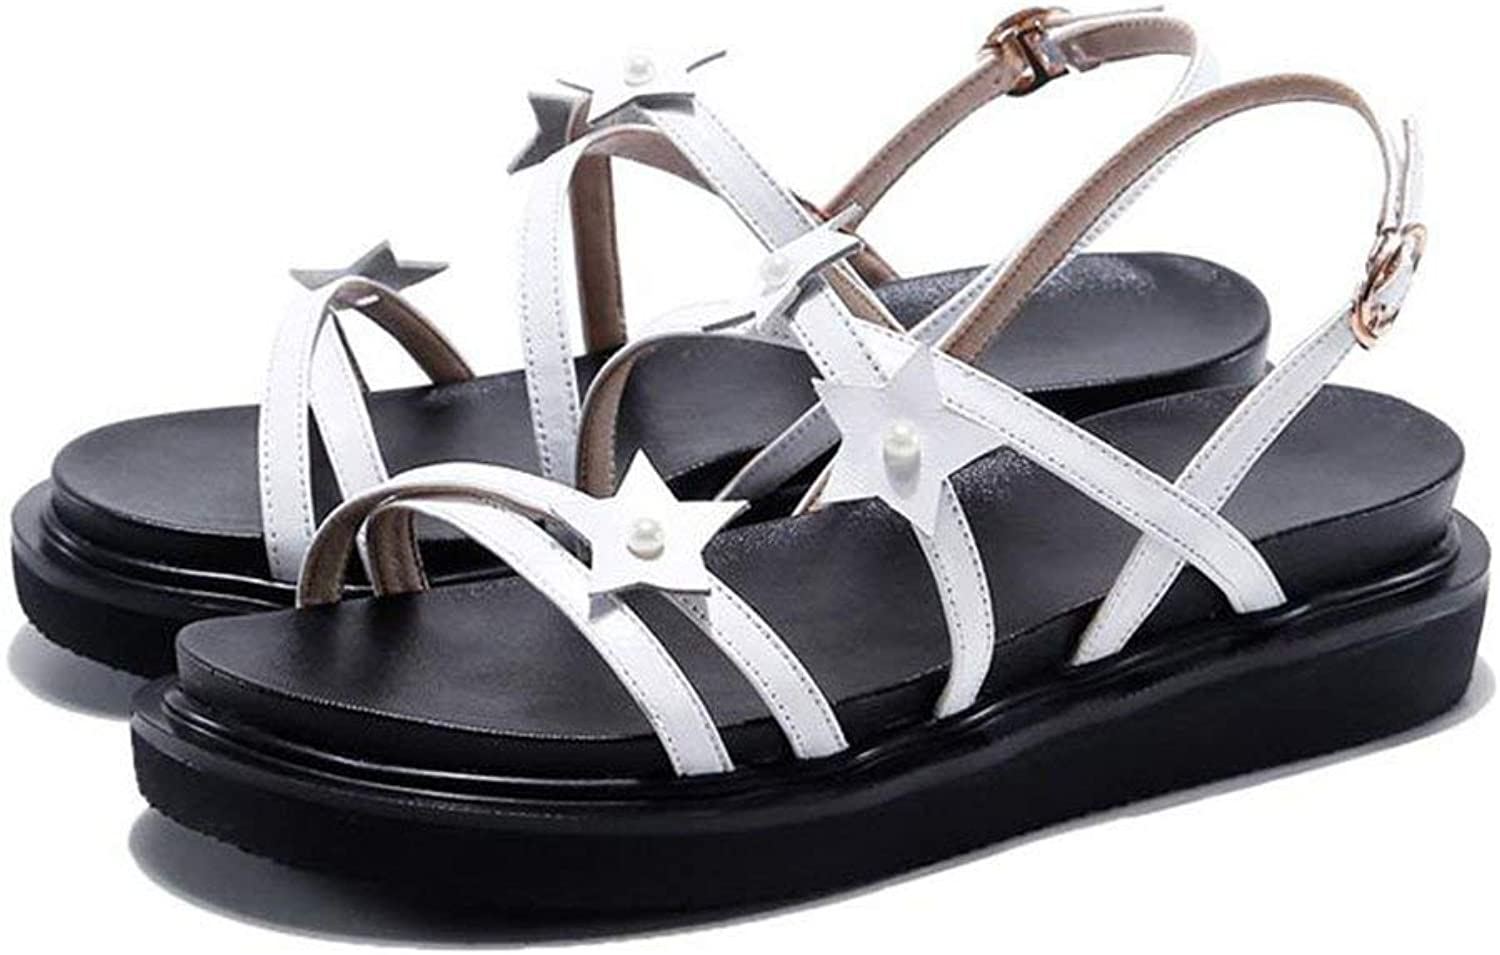 Comfortable and beautiful ladies sandals Sandals Summer Female Fashion Open Toe Mid Heel Single shoes